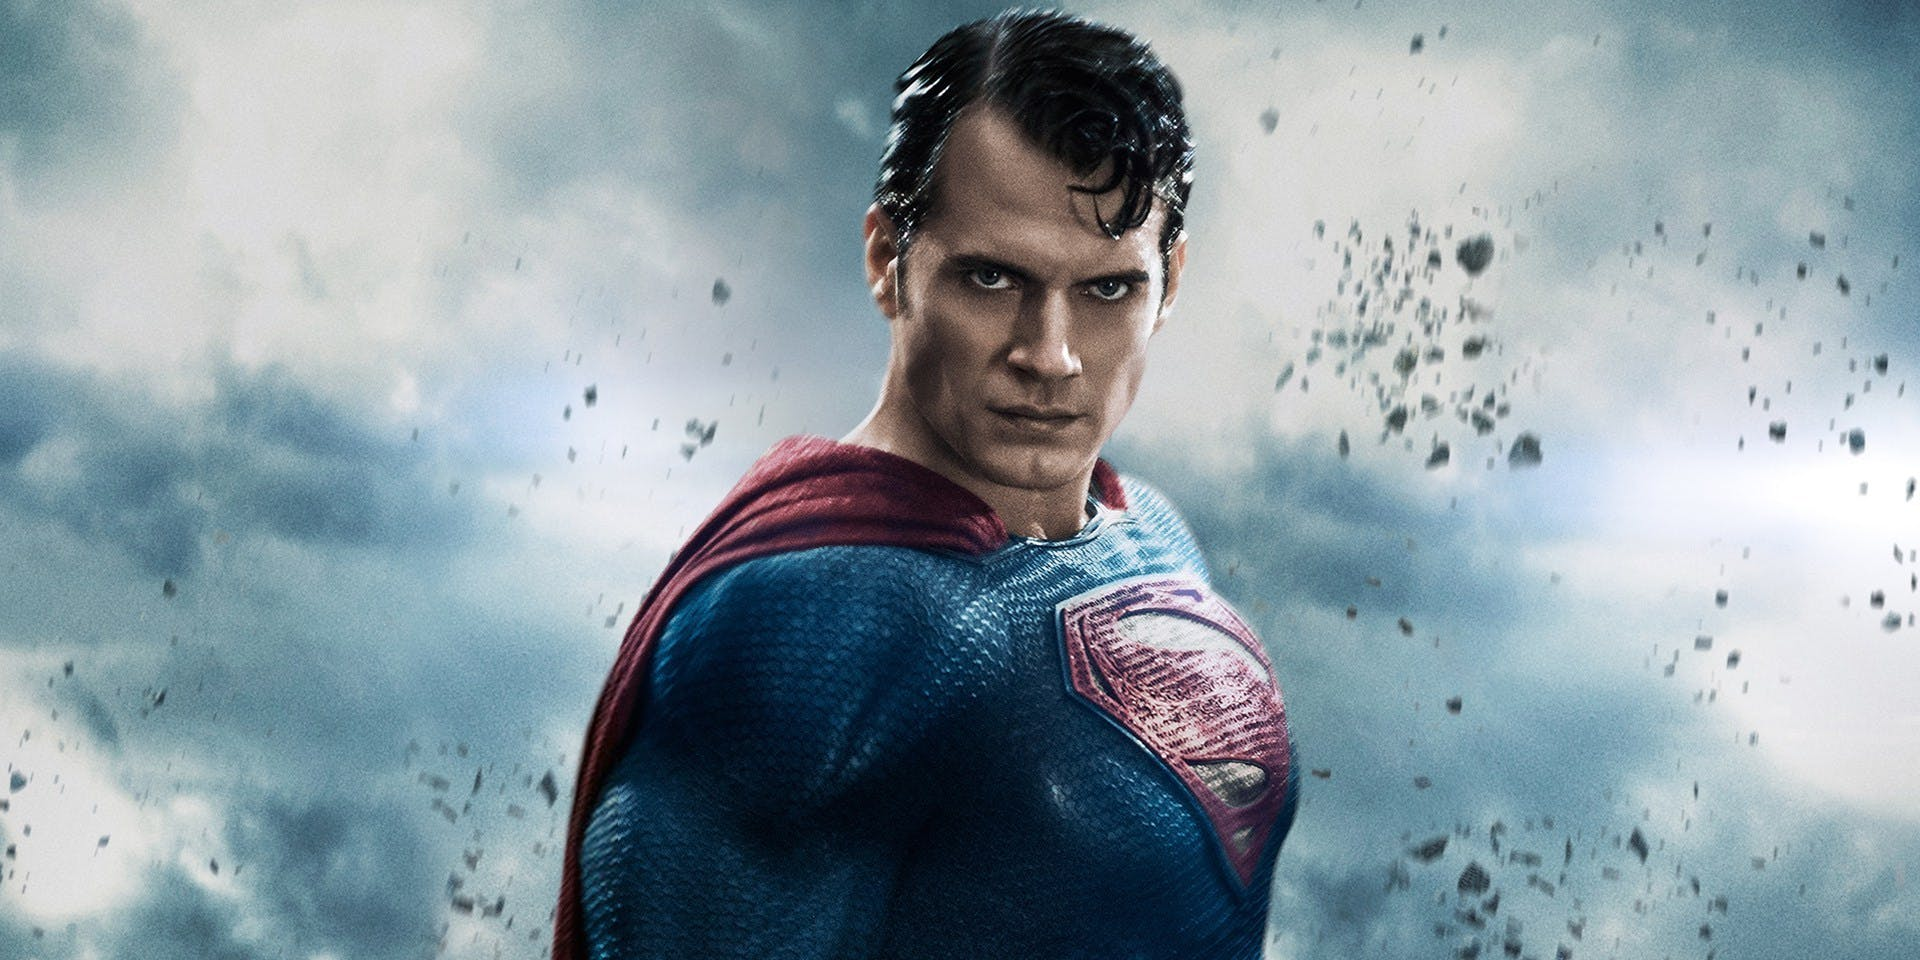 Henry Cavill Gets Classic Superman Curl In Awesome Fan Made Edit